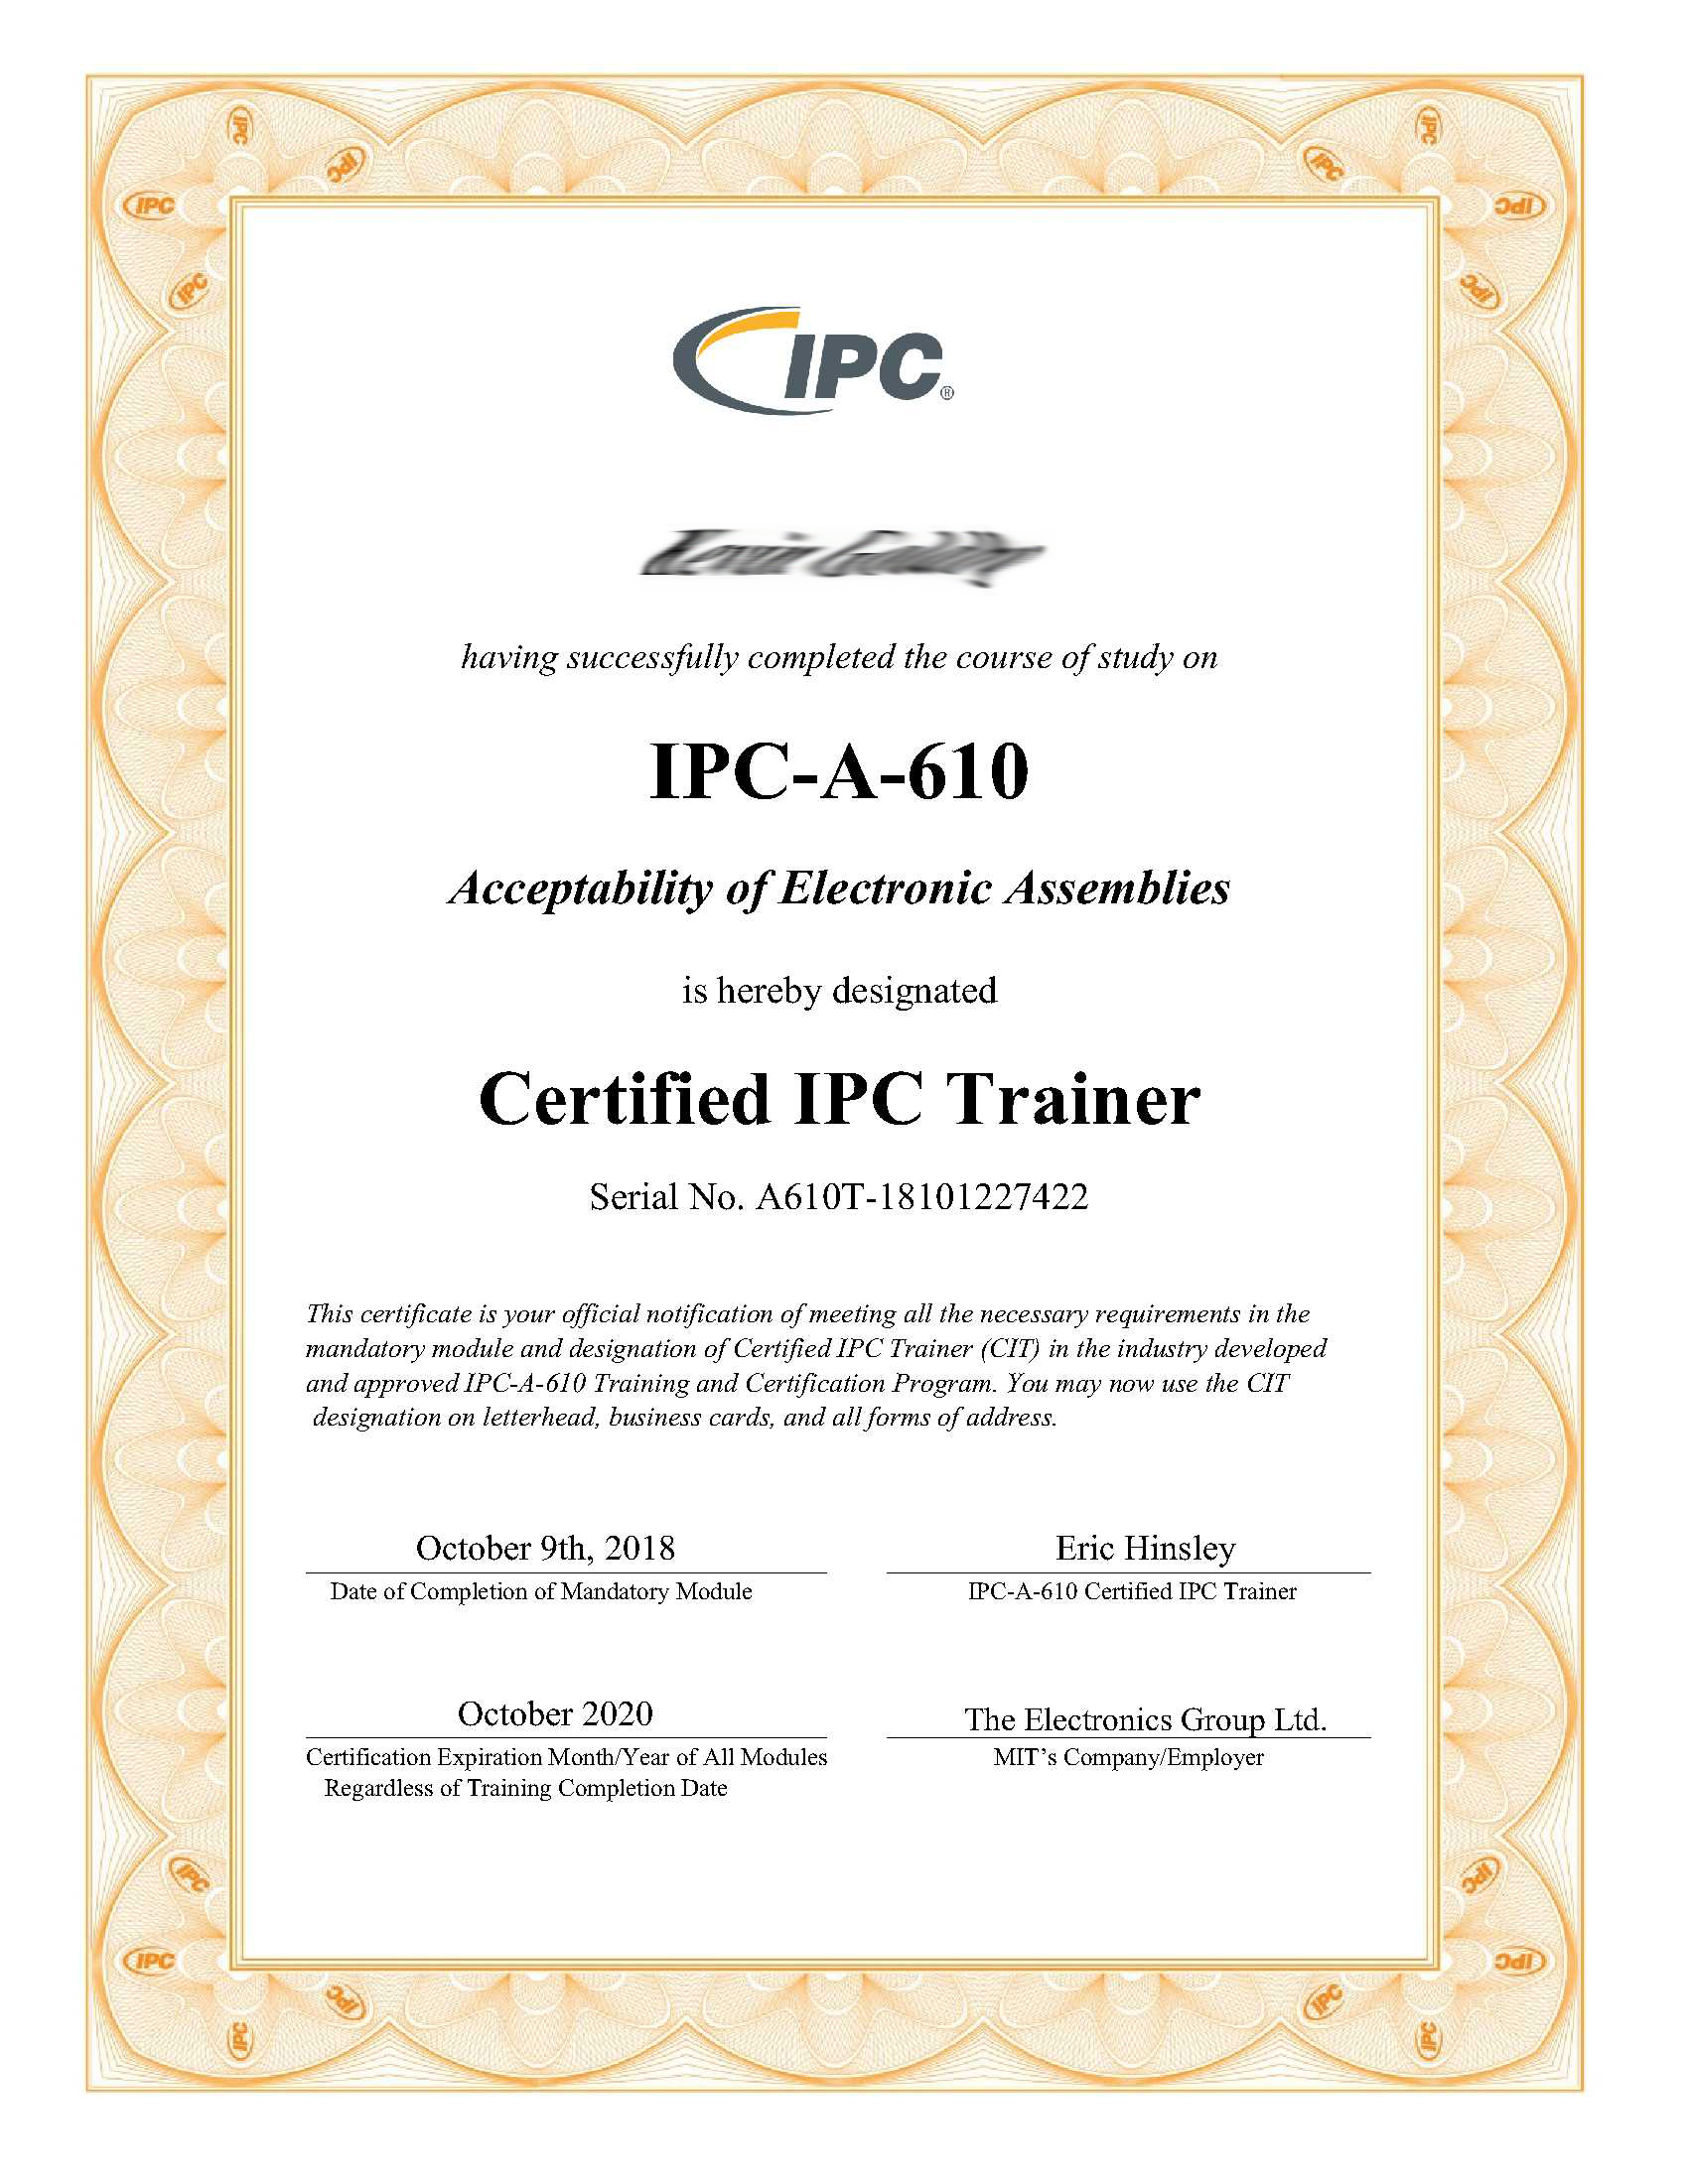 Cleveland Circuits IPC-A-610 Certificate